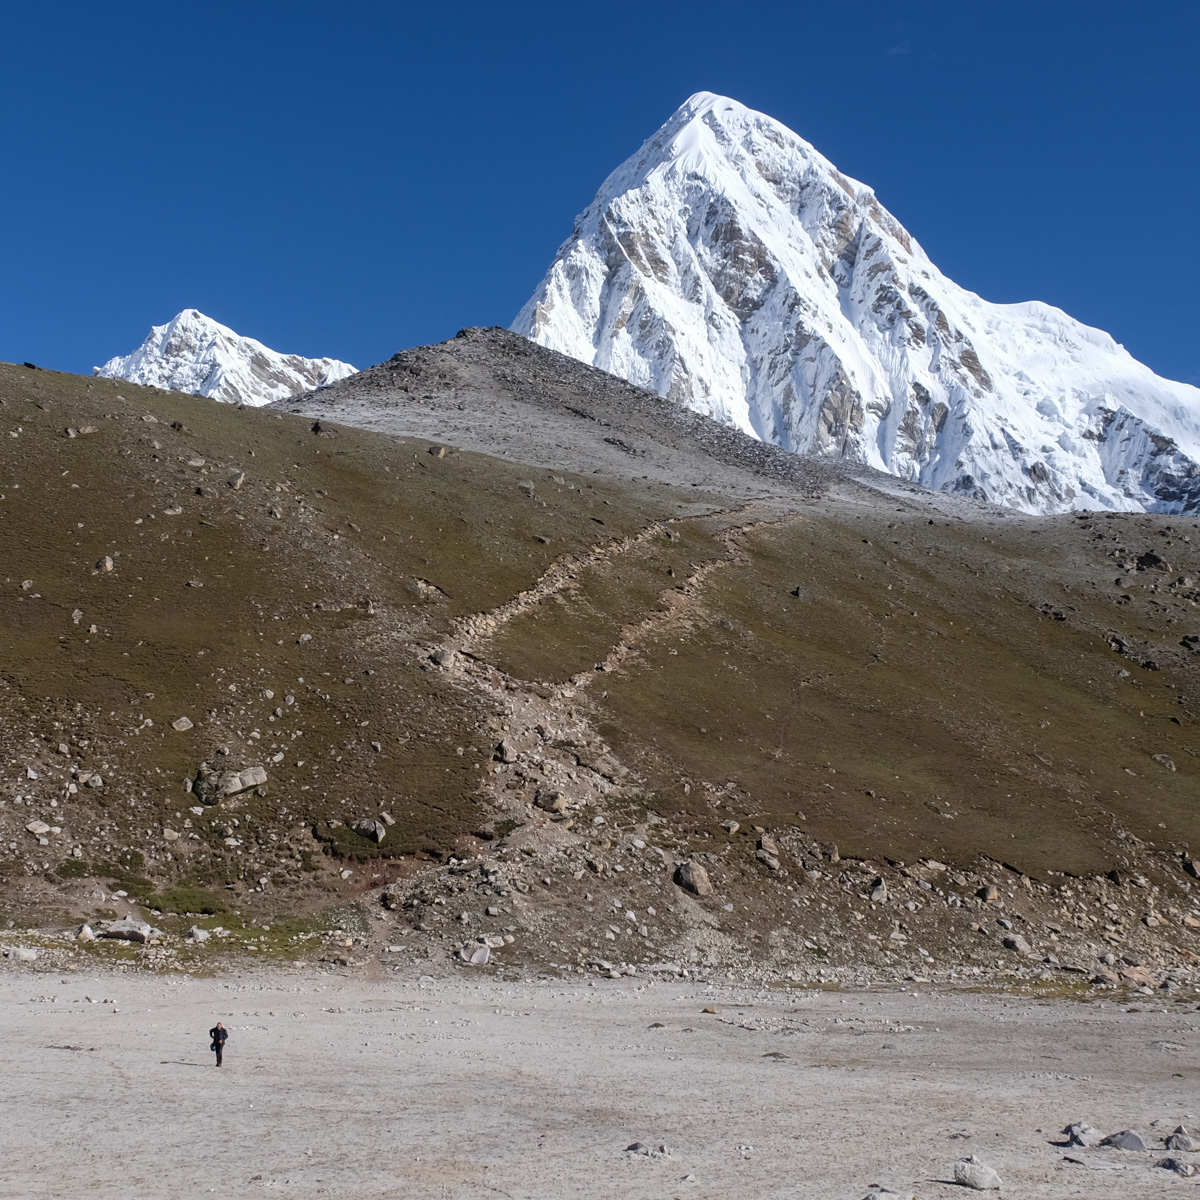 Kala Patthar & Gokyo, Everest 3 pass #3 19